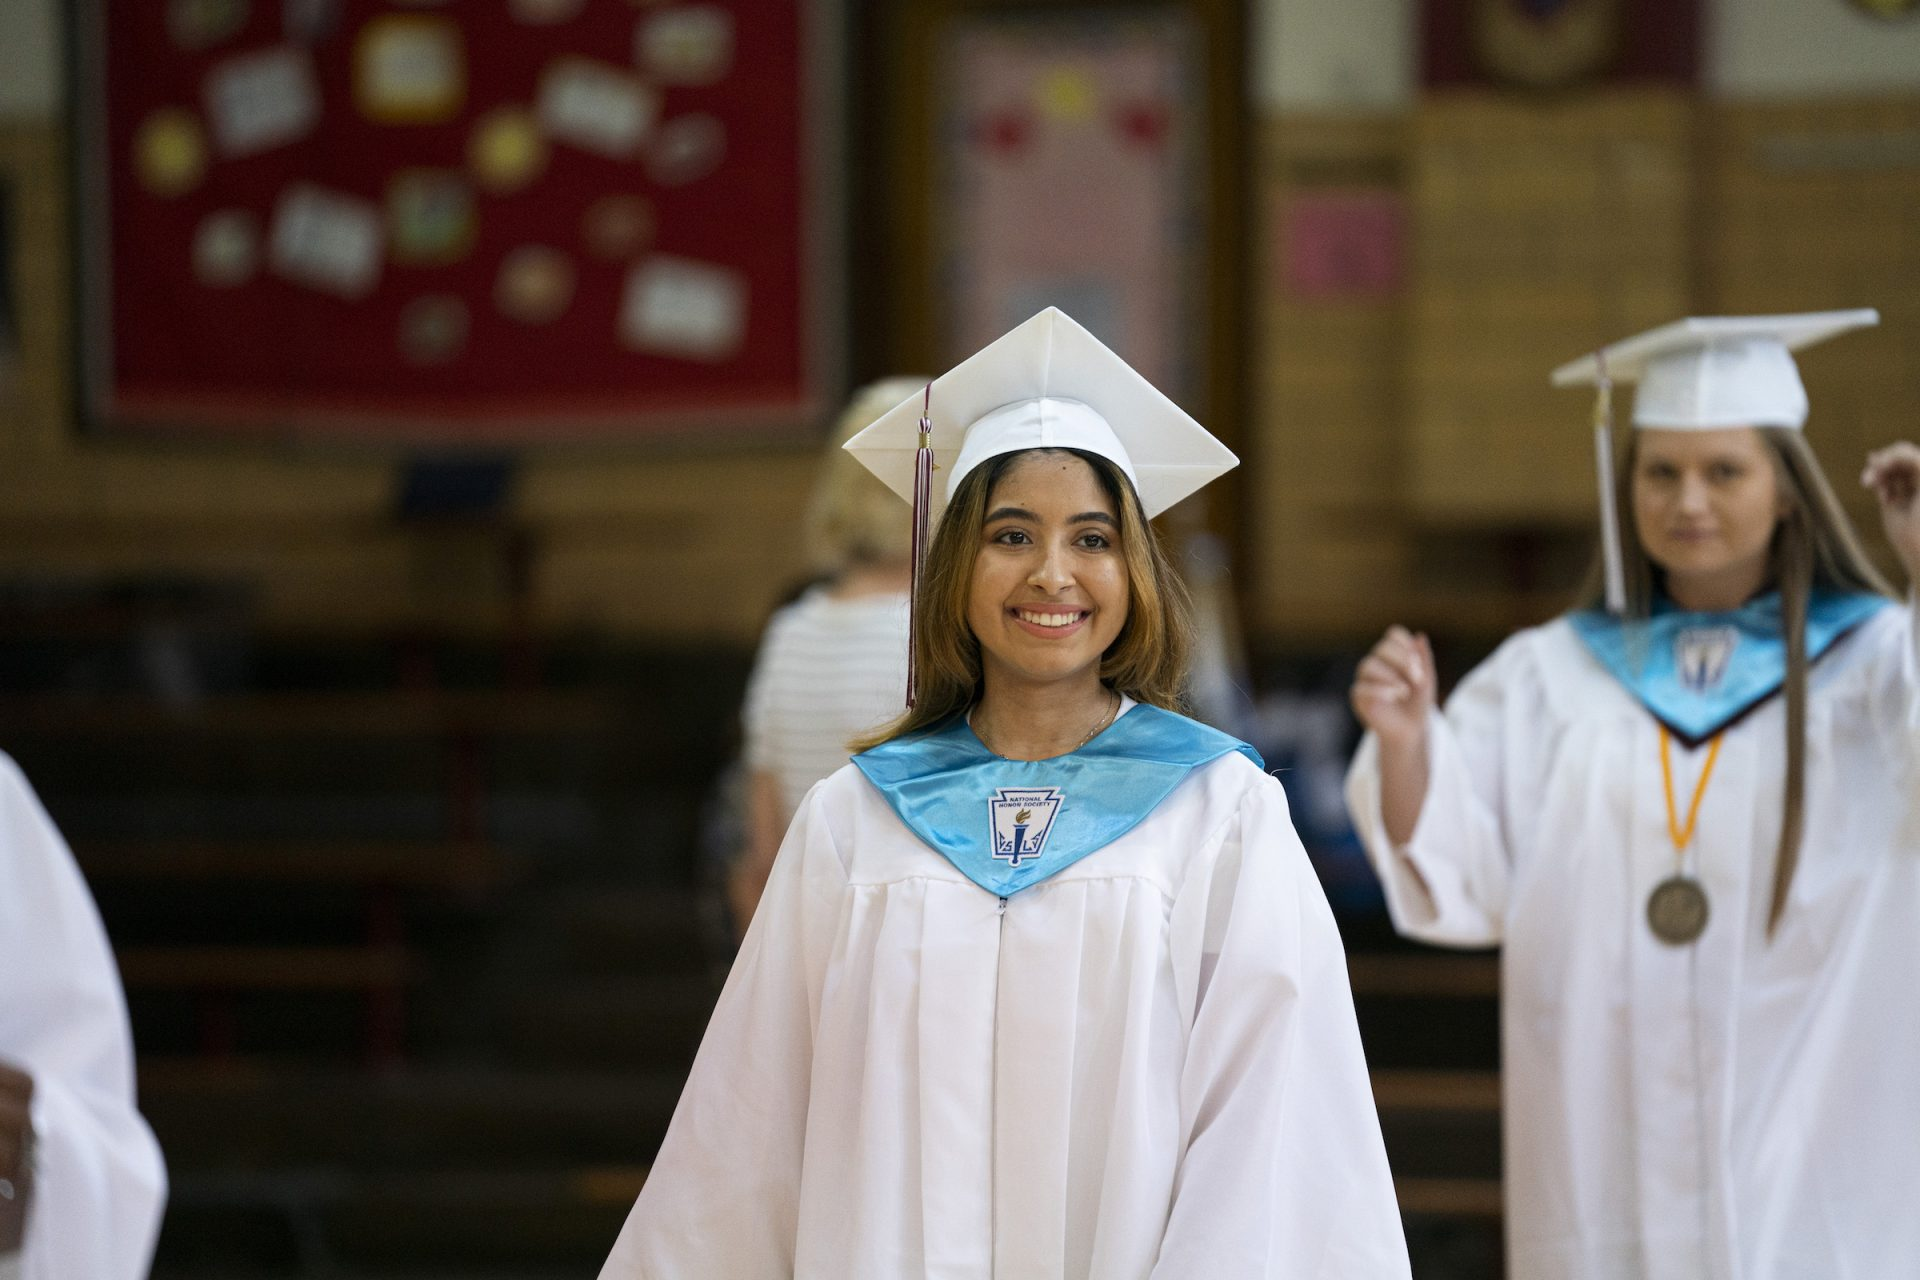 Ashley on graduation day at Little Flower Catholic School for Girls in Hunting Park.